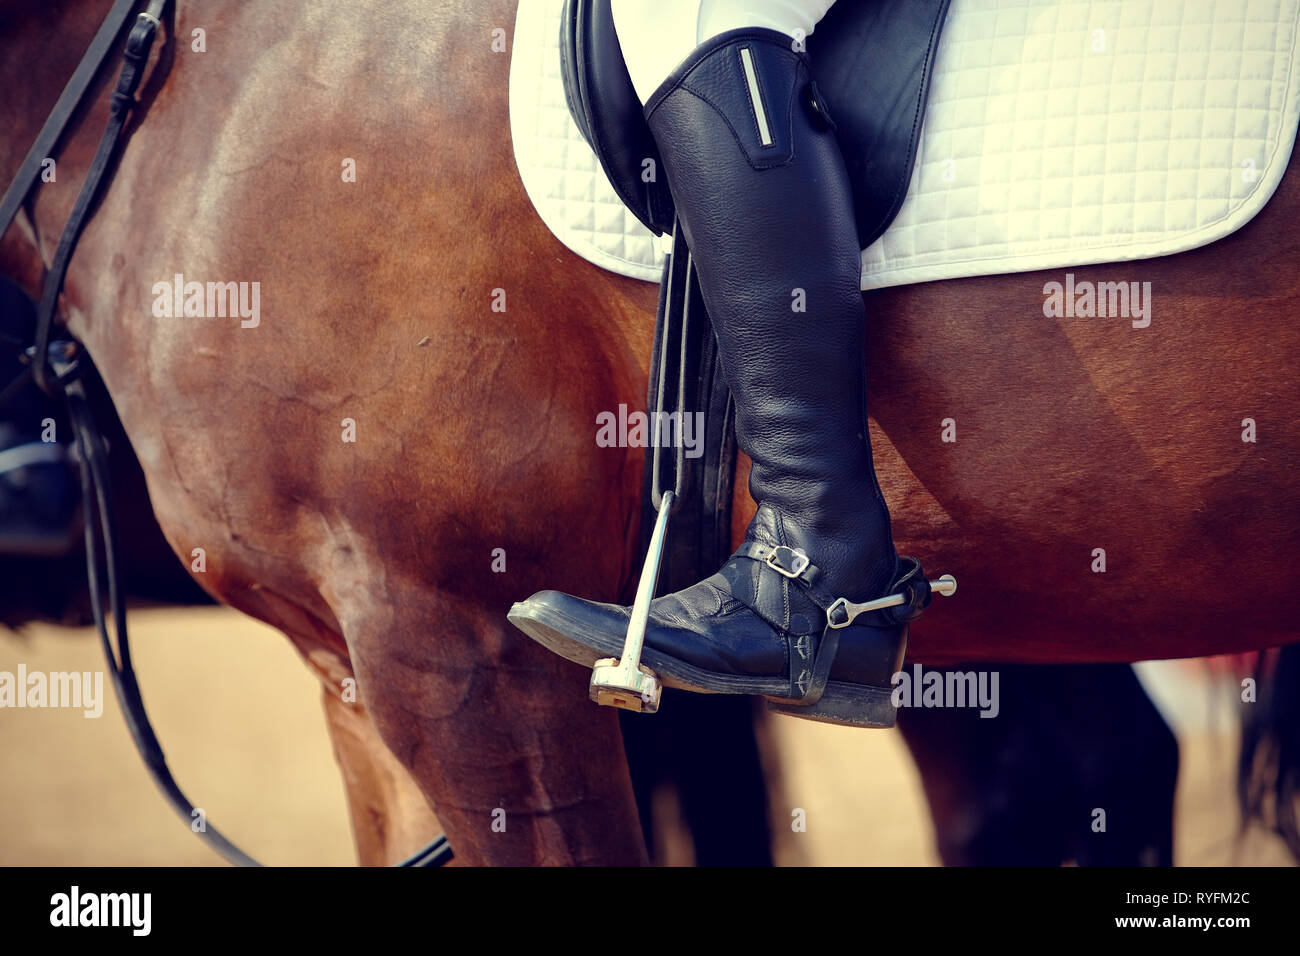 Foot of the athlete in a stirrup astride a horse Stock Photo